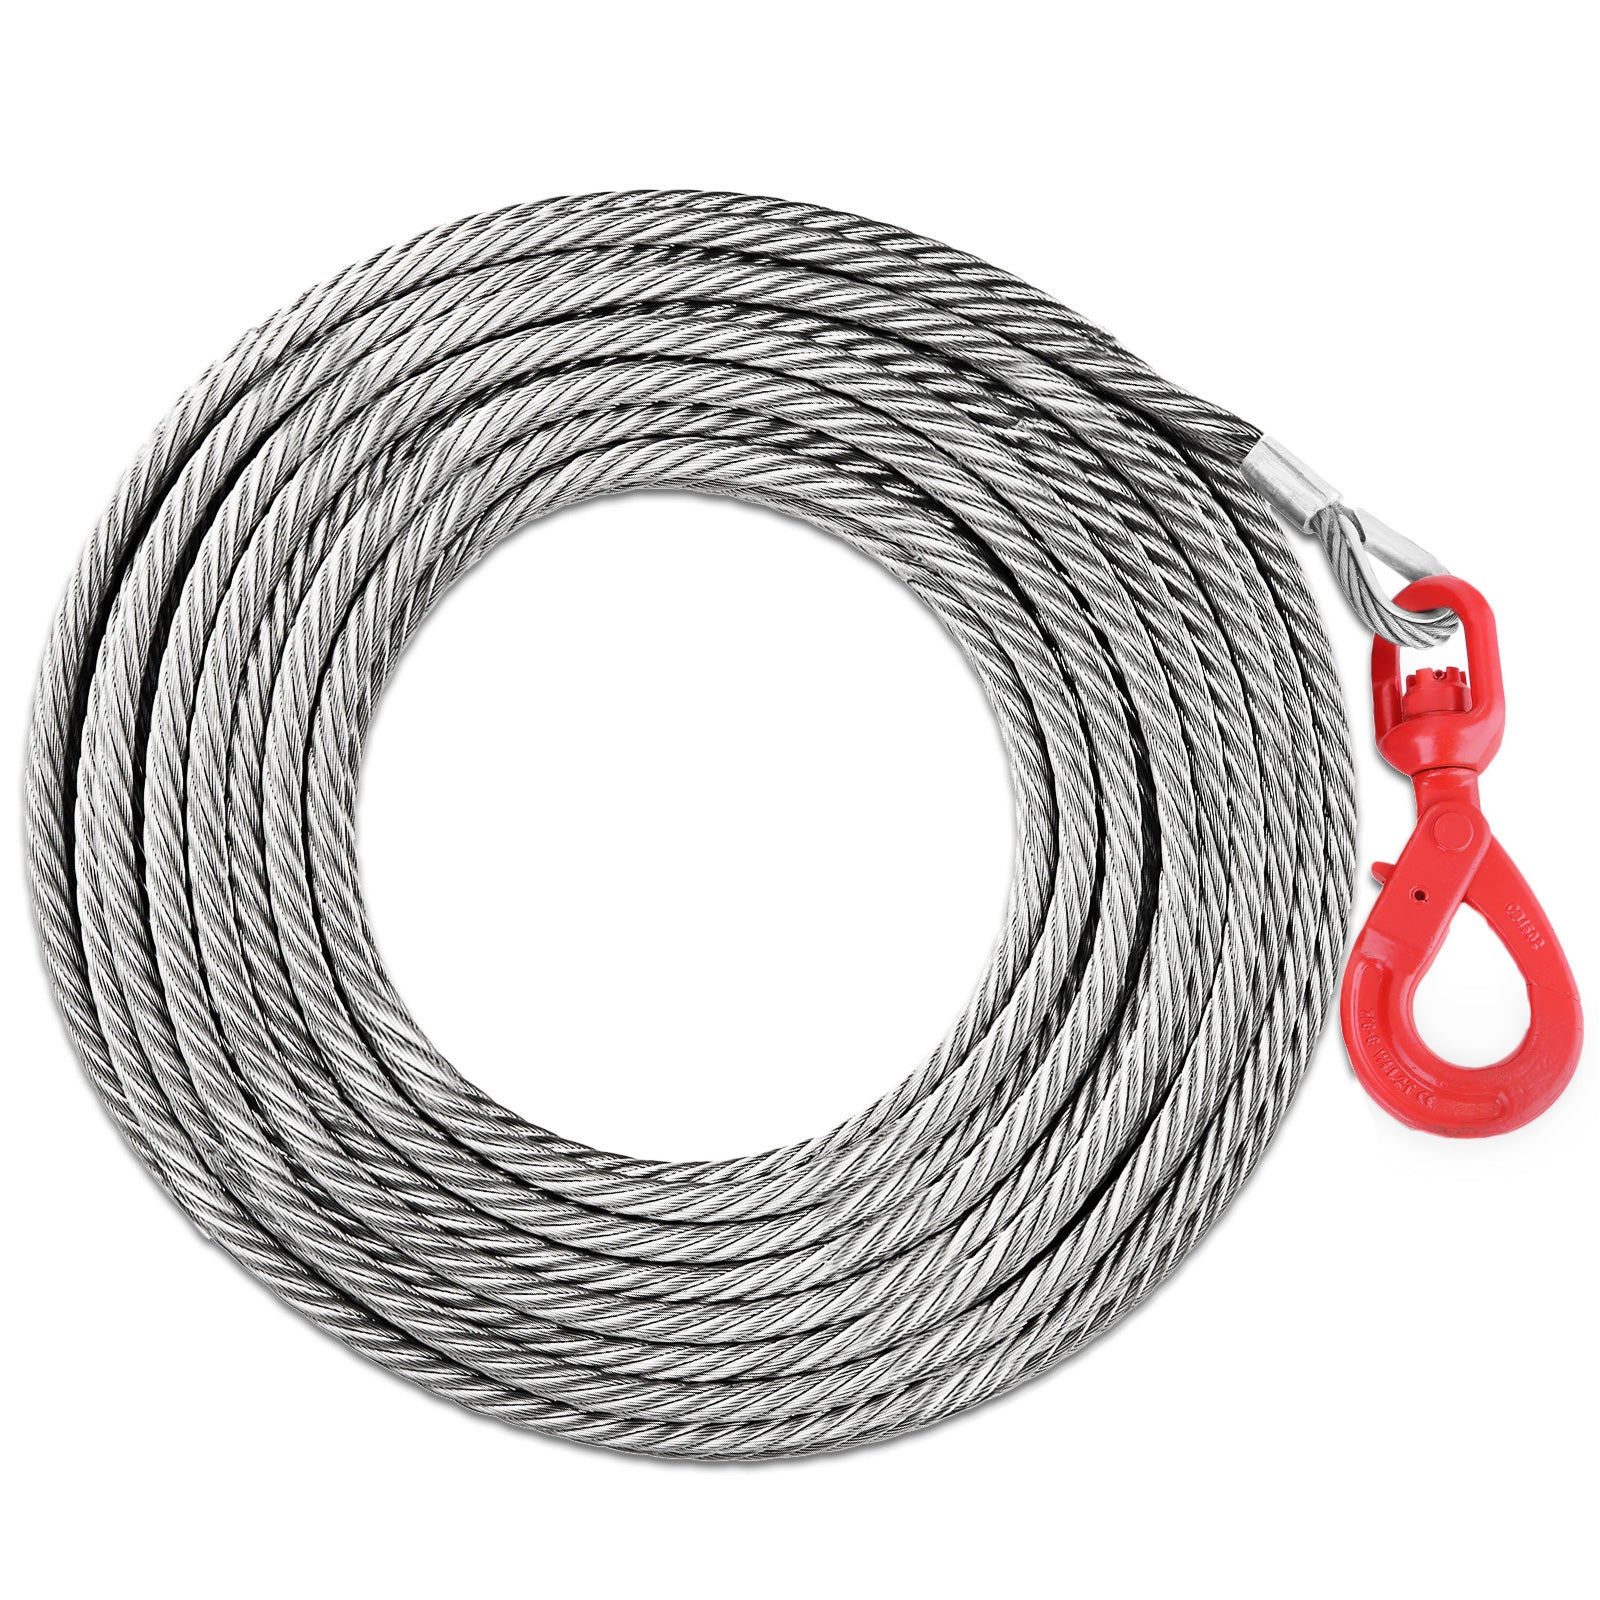 Winch Cable With Self Locking Swivel Hook 50' 4400lbs 2t Wire Rope Tow